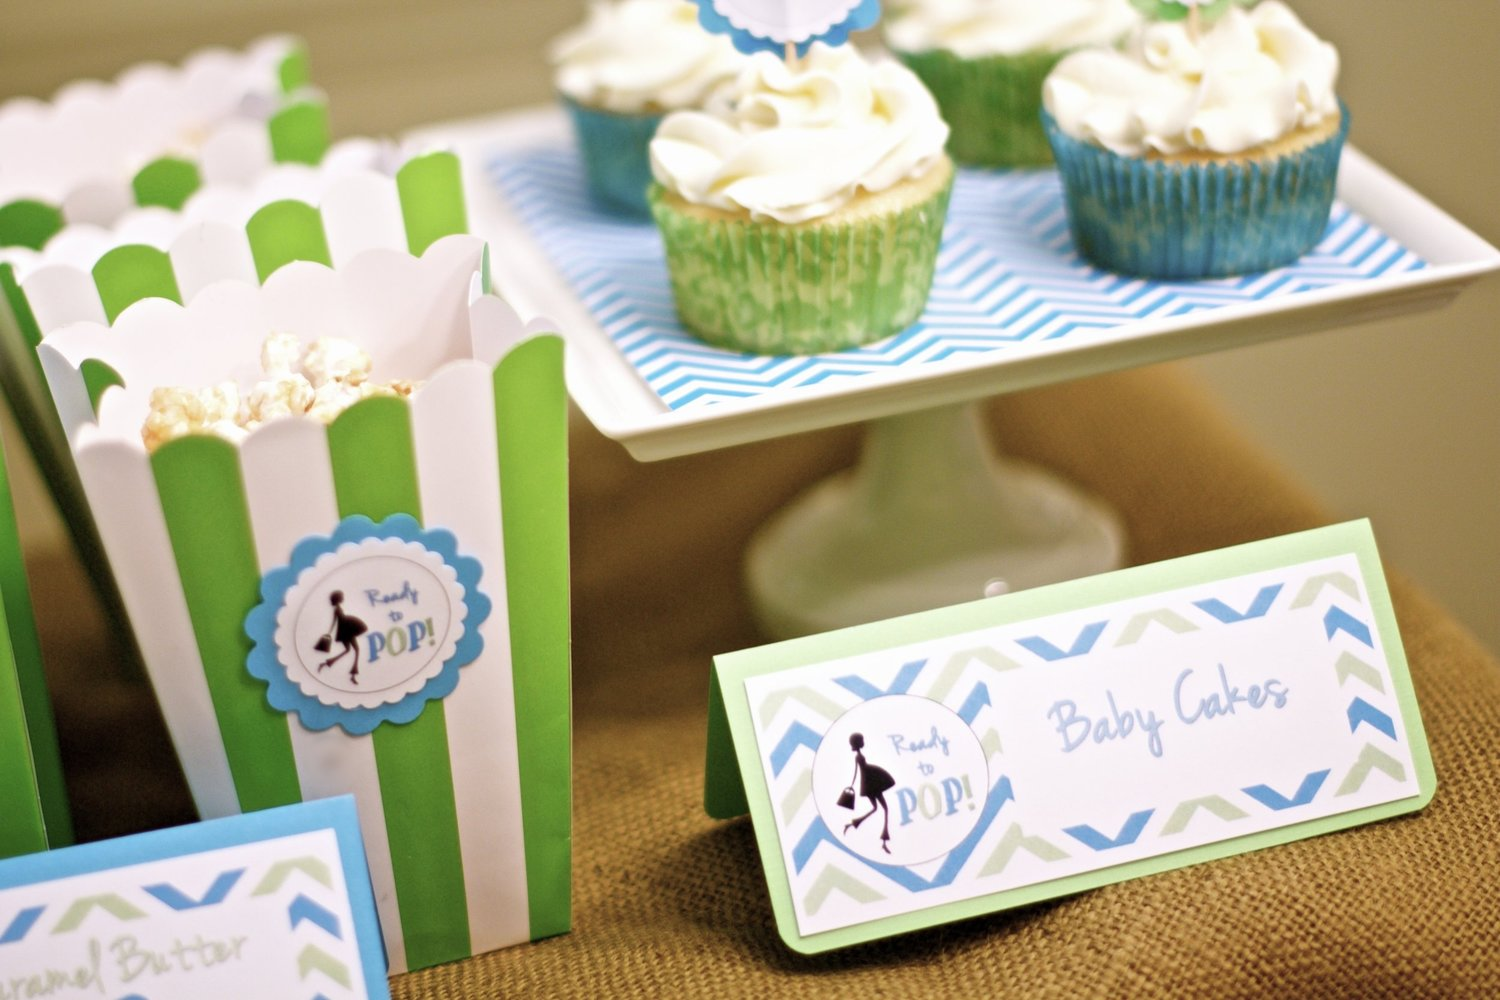 Ready To Pop Free Printables Sweetwood Creative Co Atlanta Wedding Planner Upscale Event Design